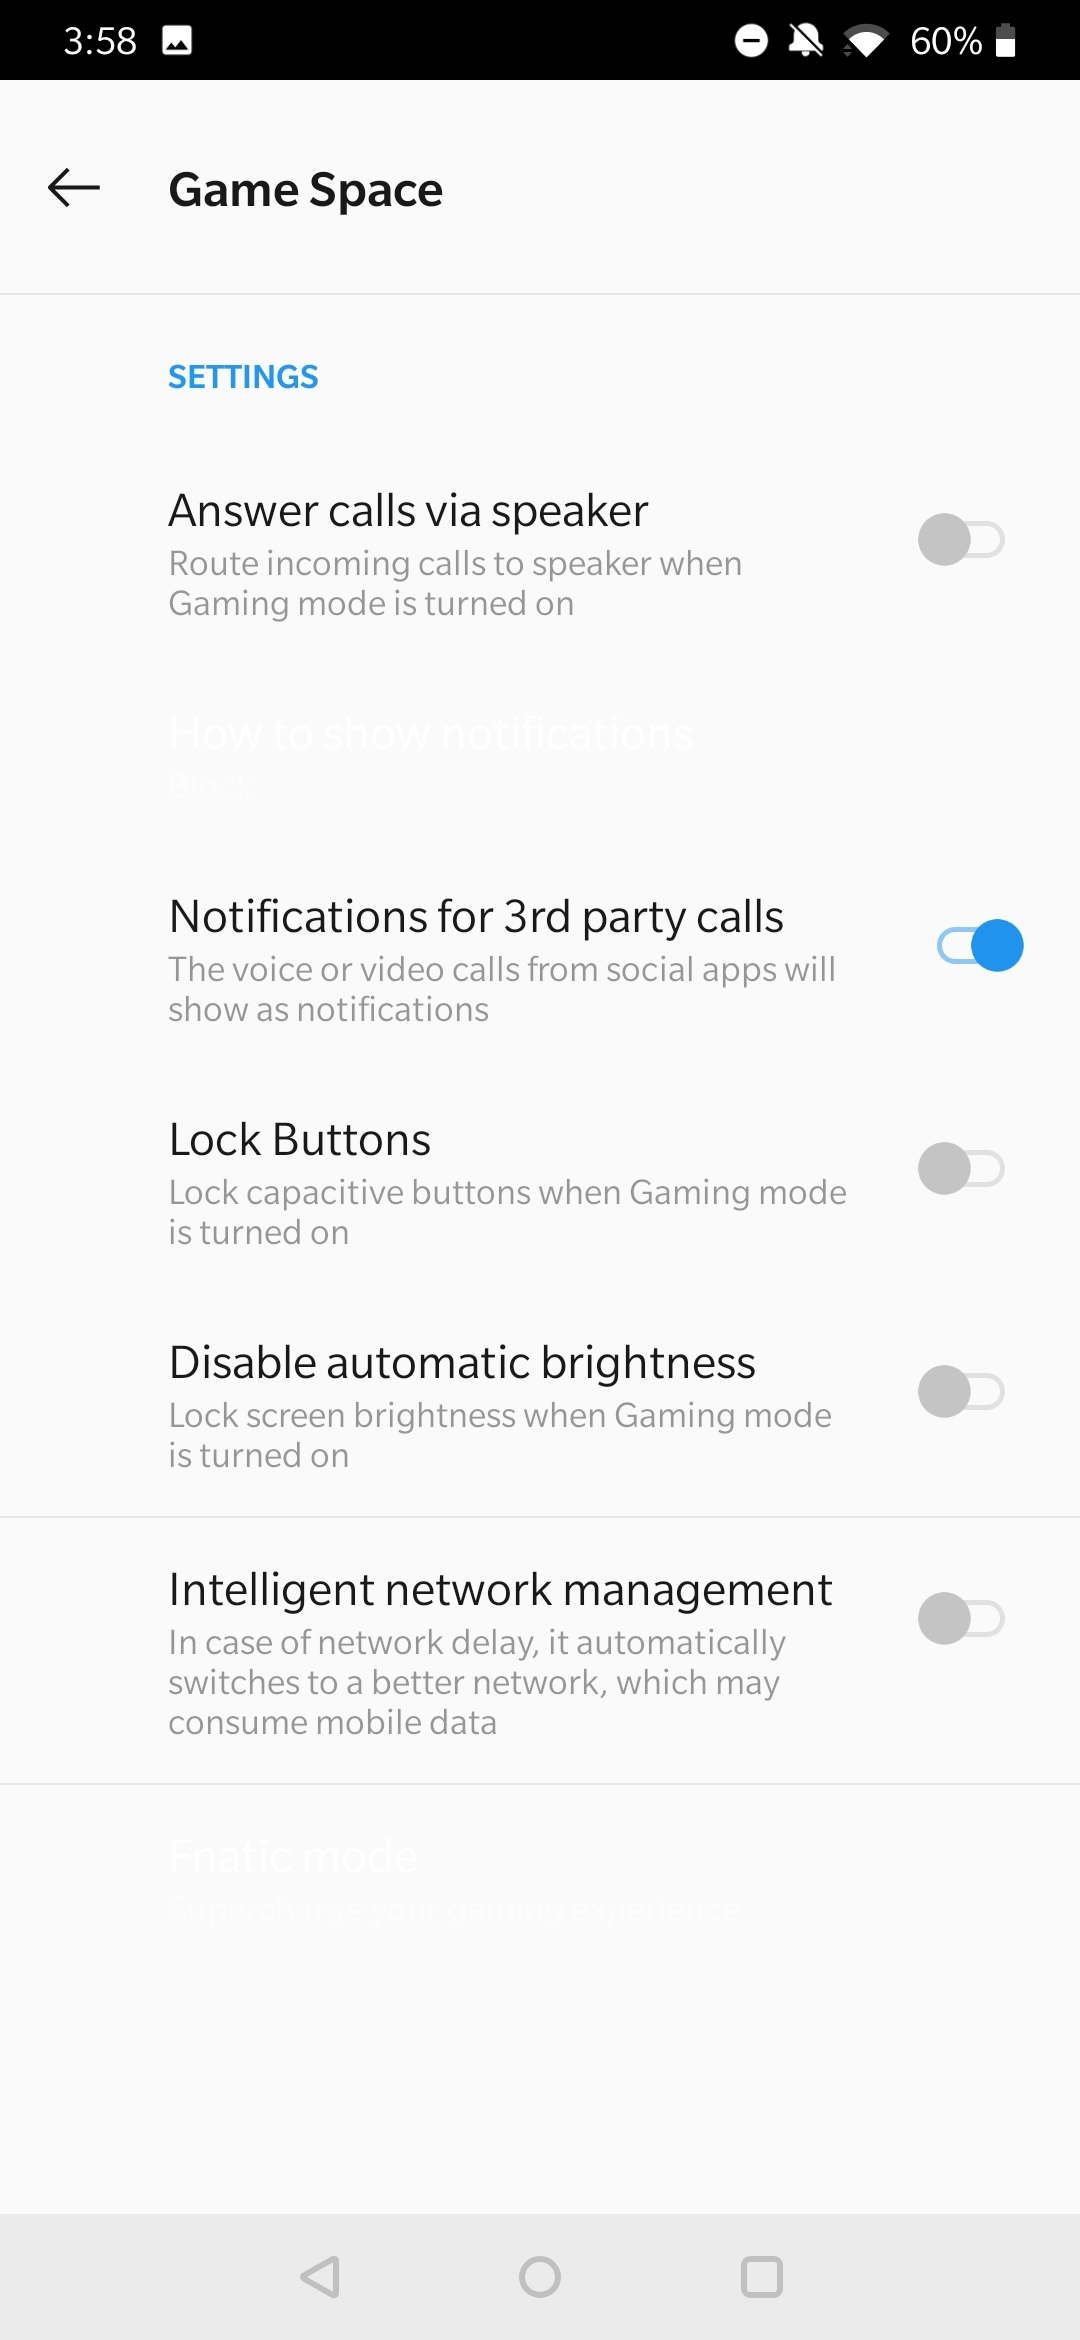 Download the new Game Space app from OnePlus' Android Q beta